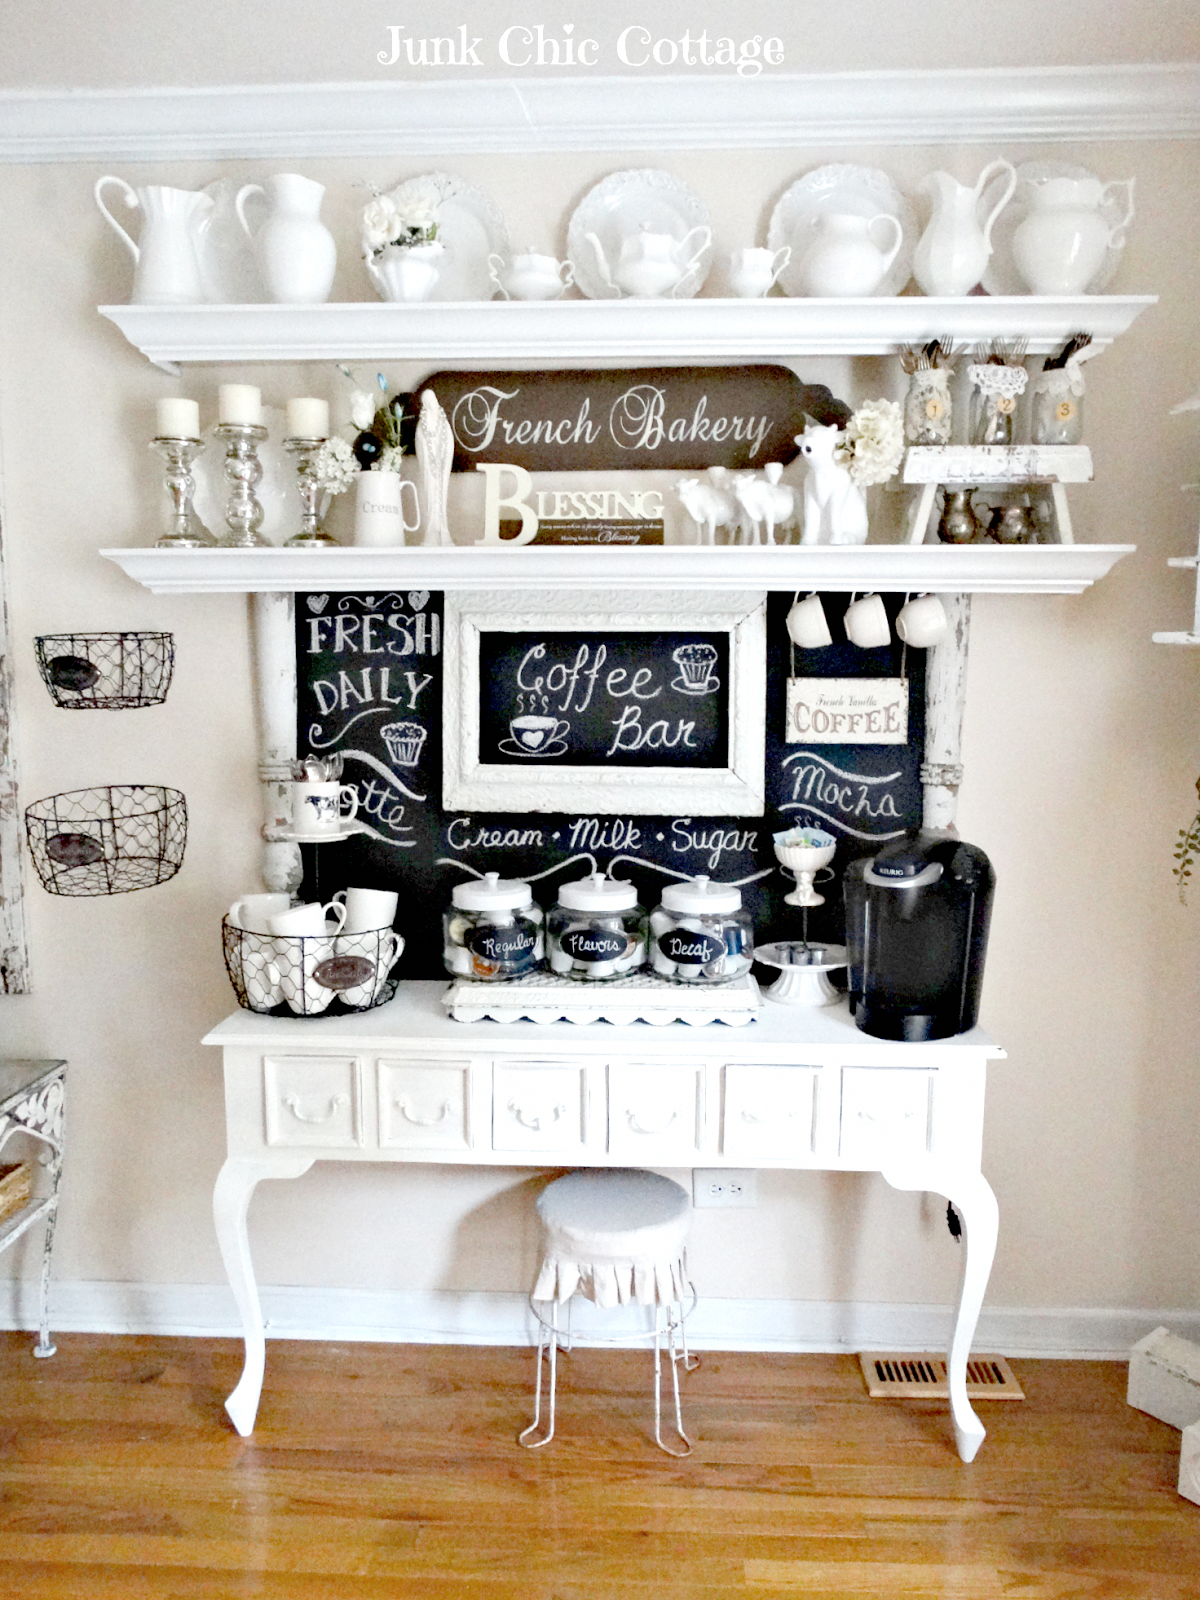 13 Adorable Diy Coffee Bar Ideas For Your Cozy Home Coffee Bar Home Home Coffee Stations Junk Chic Cottage